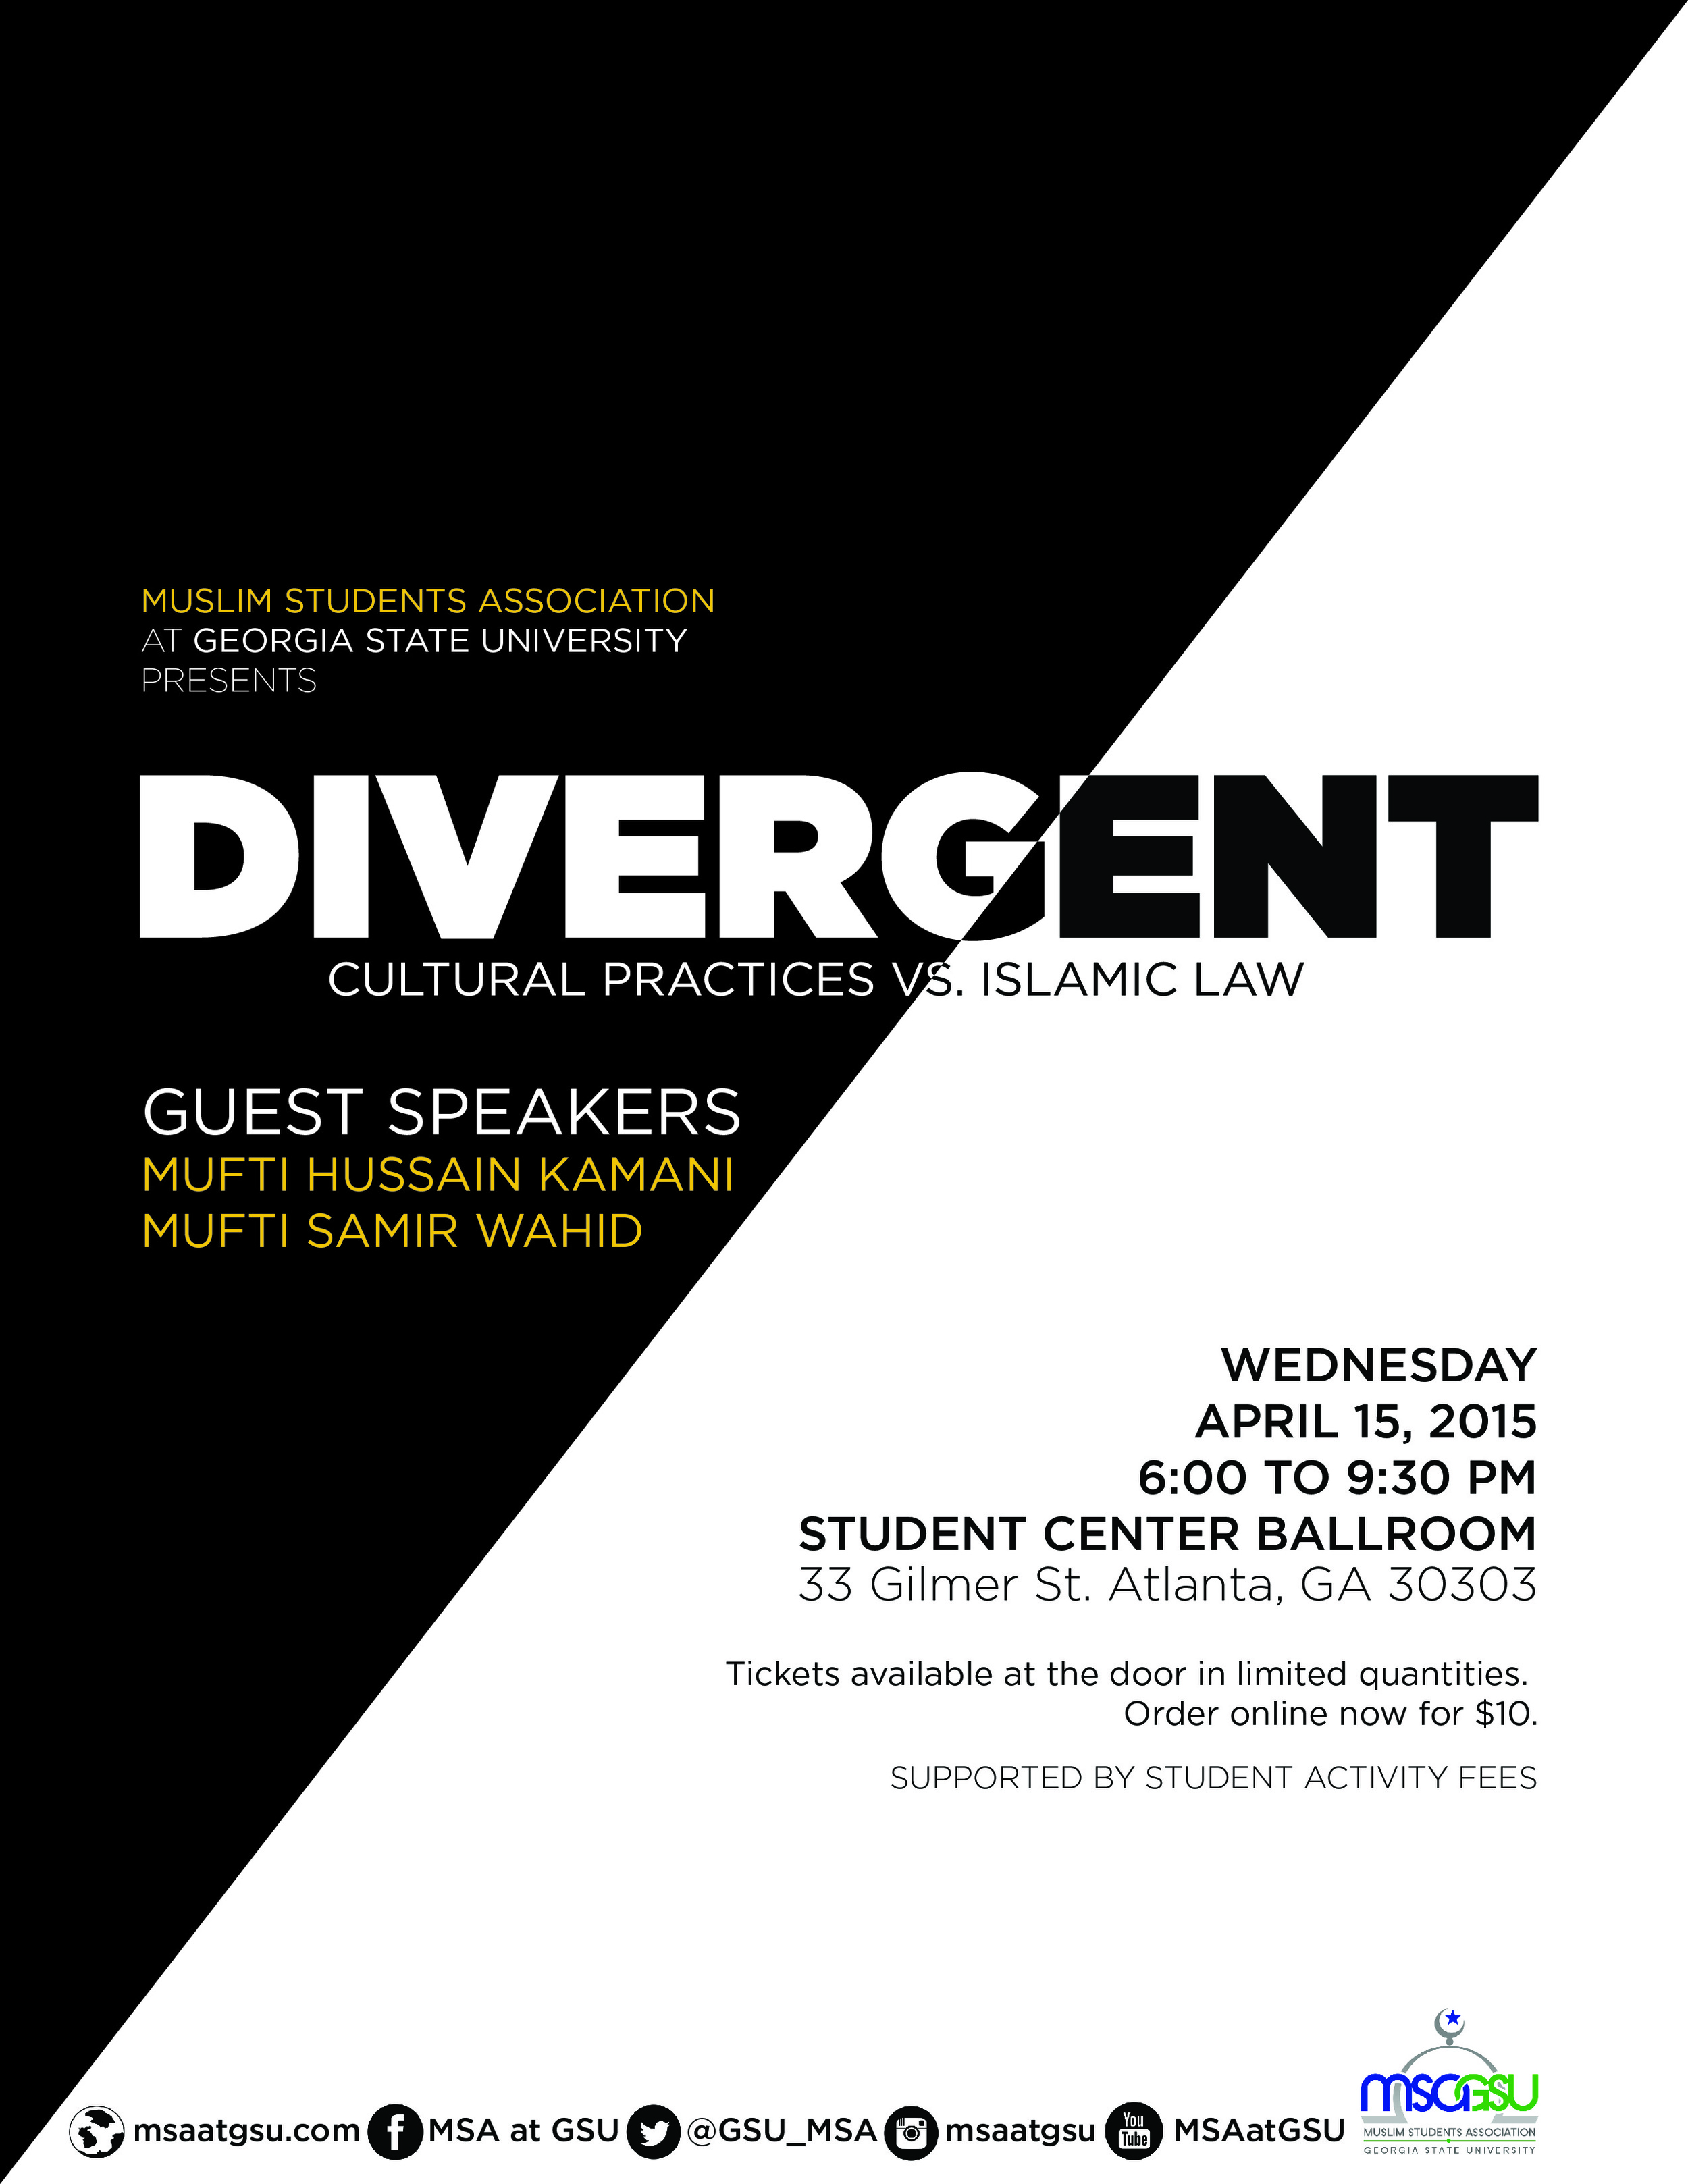 Divergent: Cultural Practices vs. Islamic Law